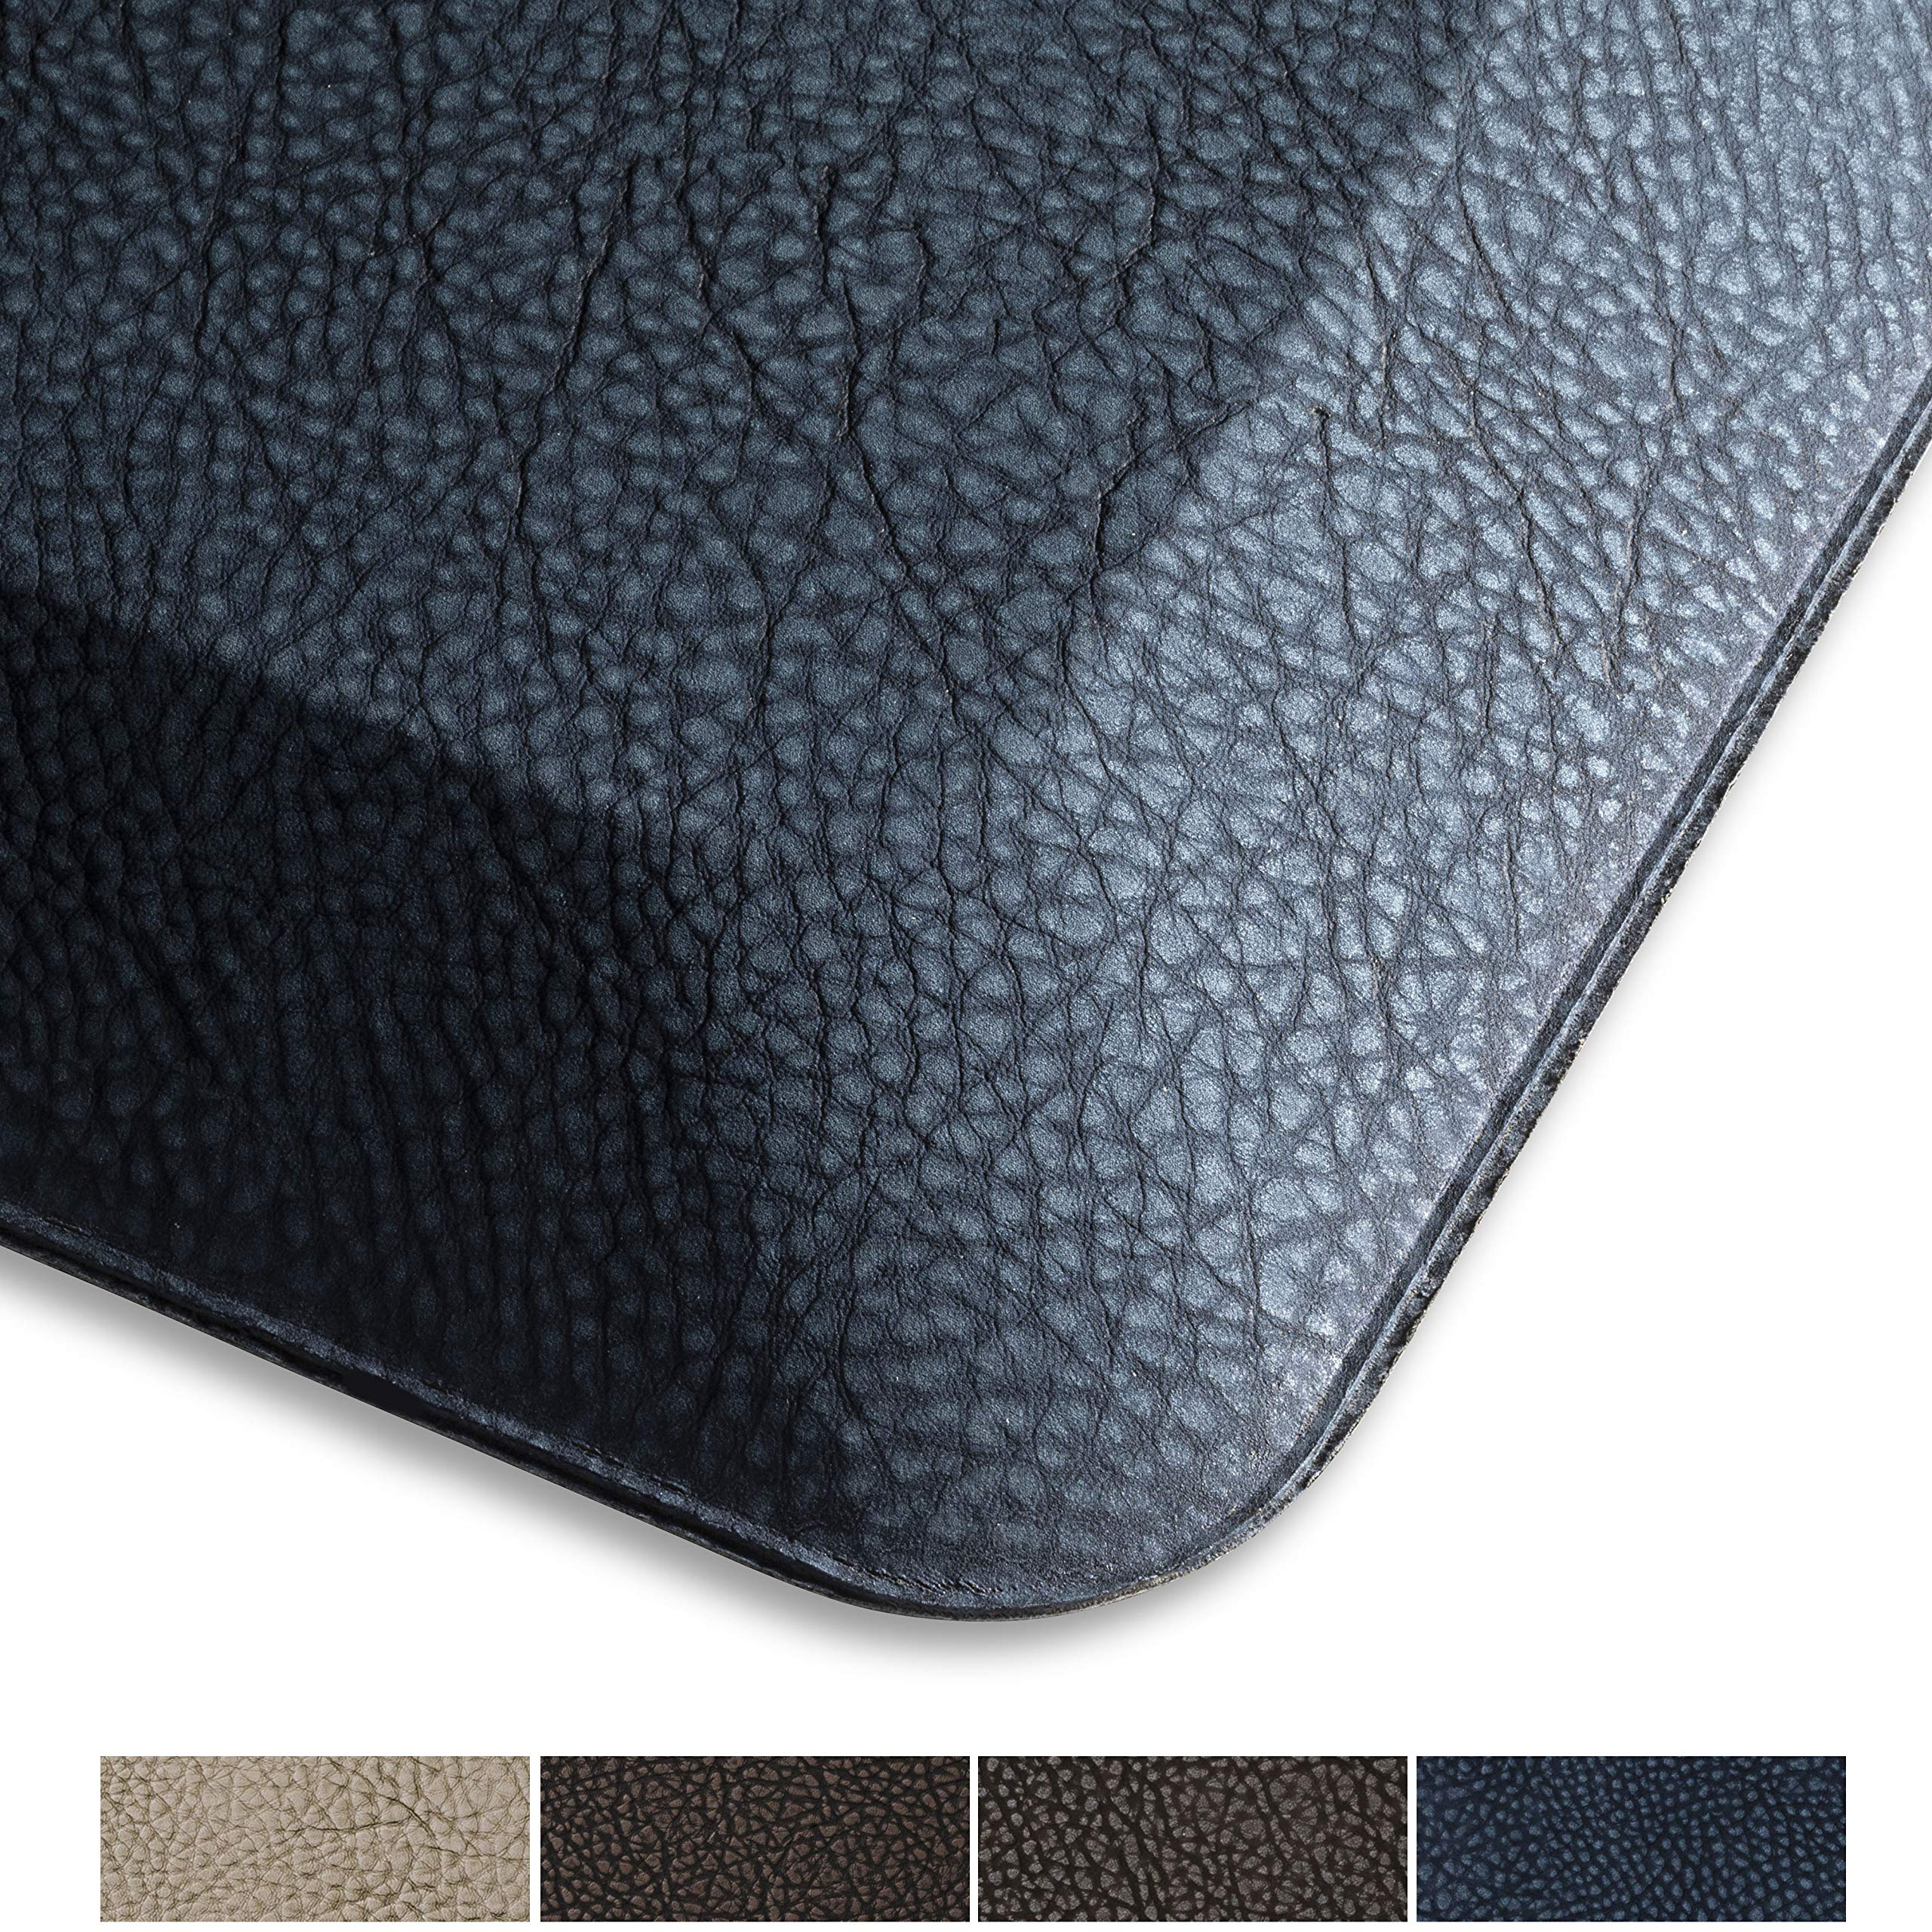 """SoHome Air Step Anti-Fatigue Standing Mat, Great for Home, Kitchen and Office, Commercial Grade Non Slip Backing, 3/4 Inch Thick, Phthalate Free, Supports Foot, Knee, and Back,20""""x32"""" Navy Blue"""